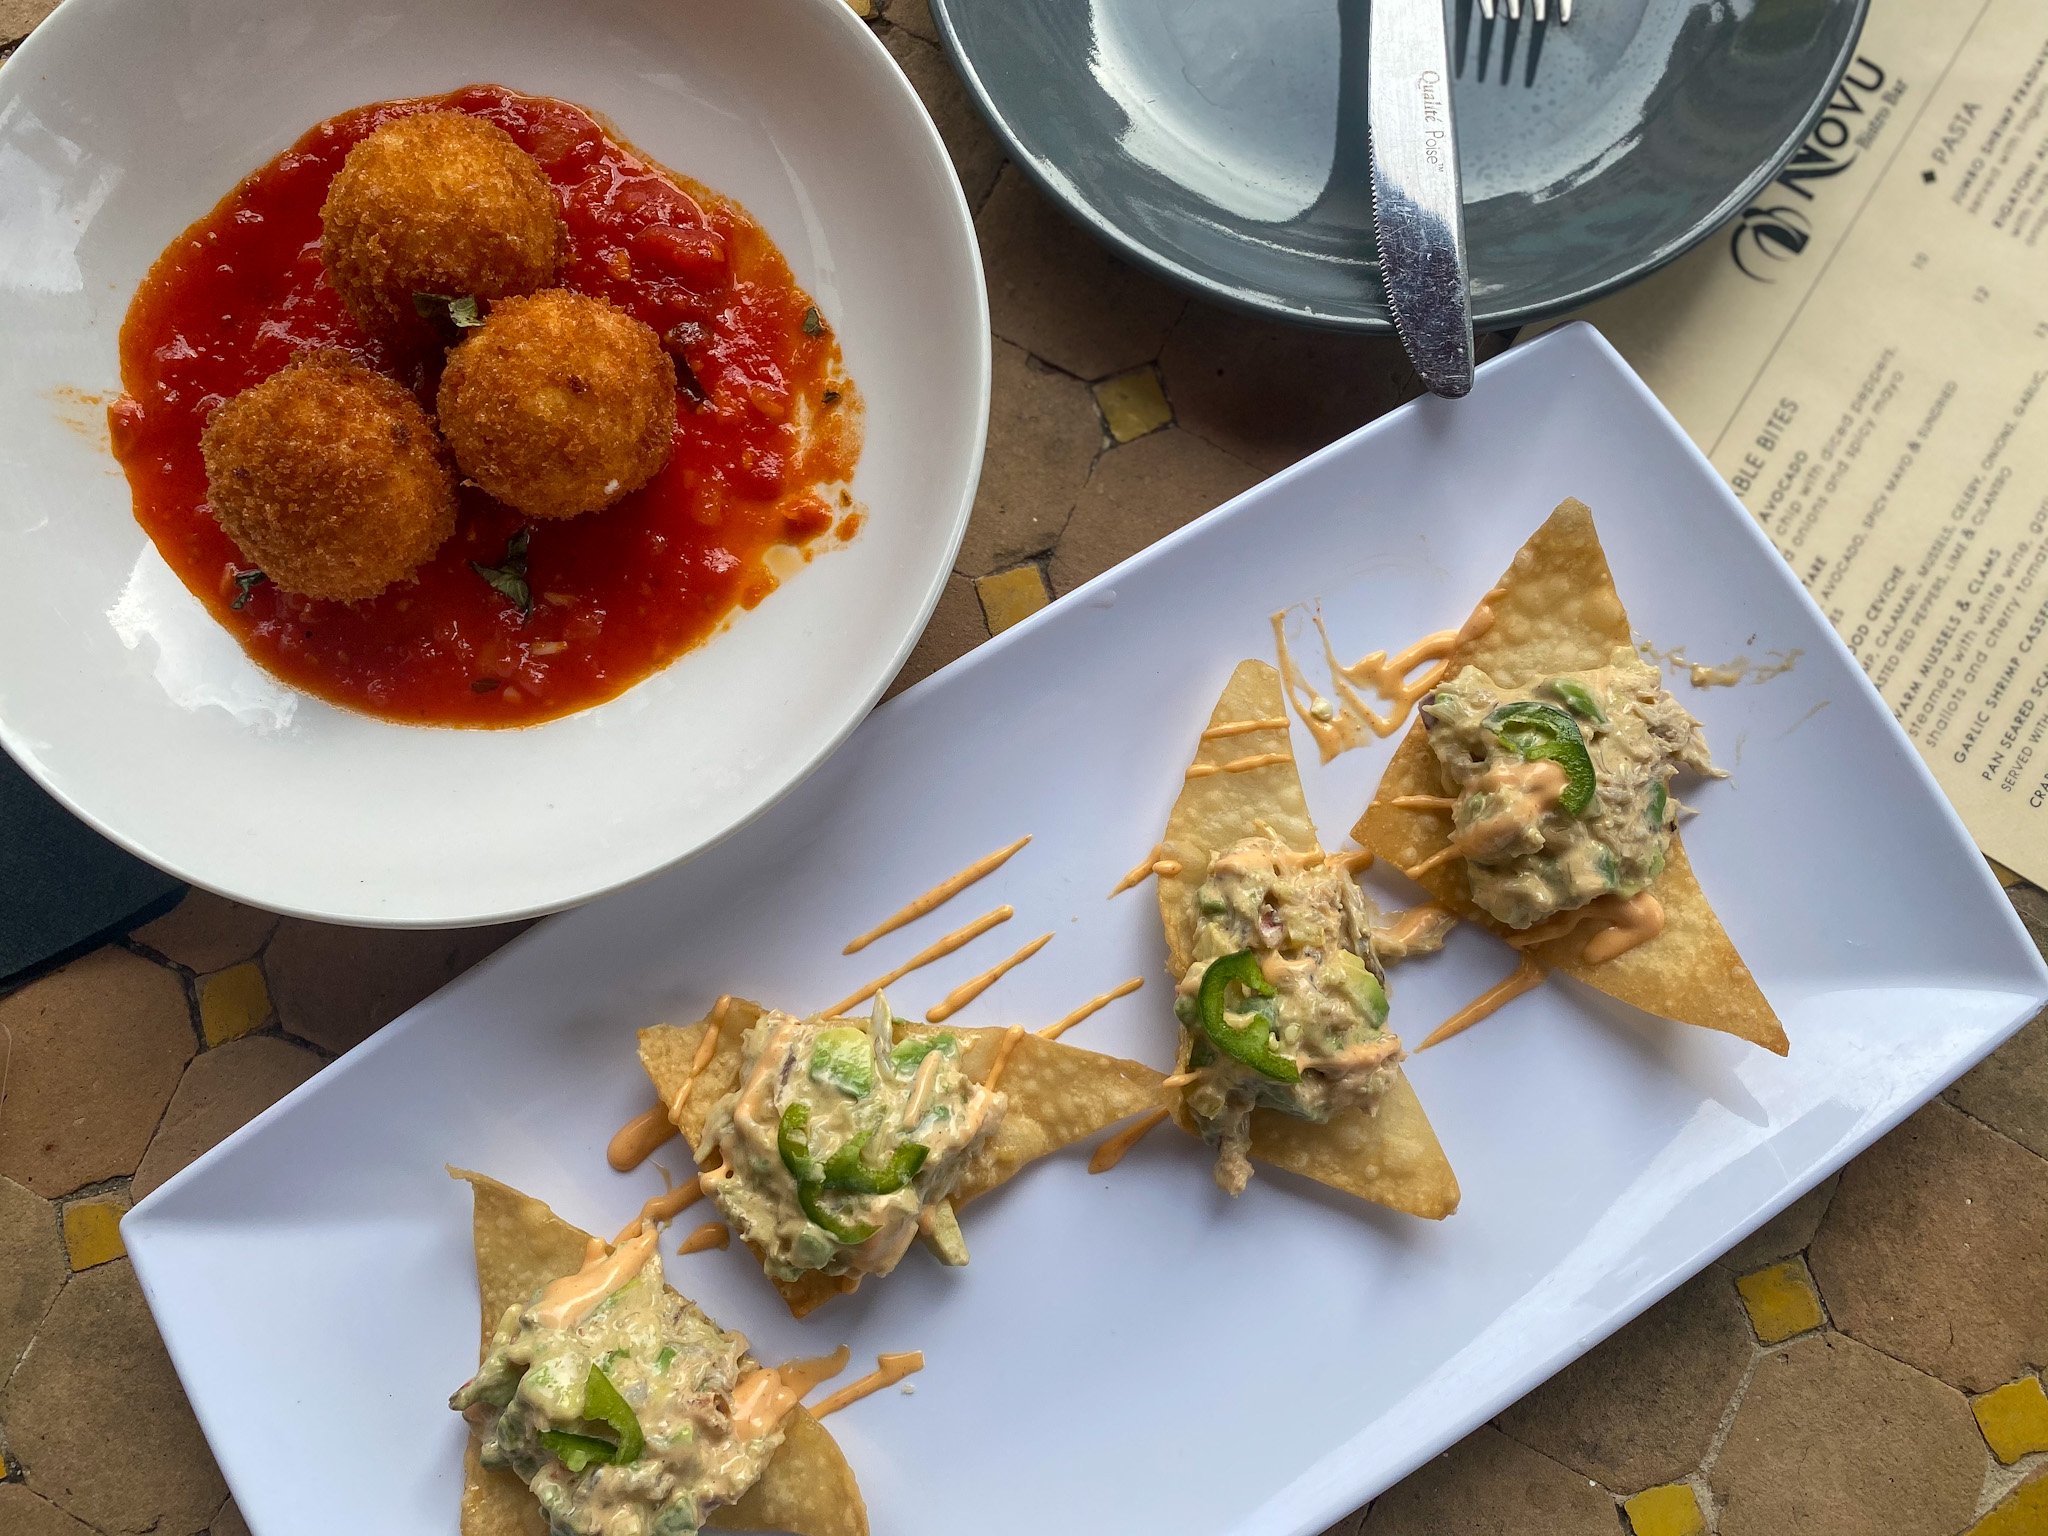 Goat Cheese Fritters and the Crab and Avocado appetizer